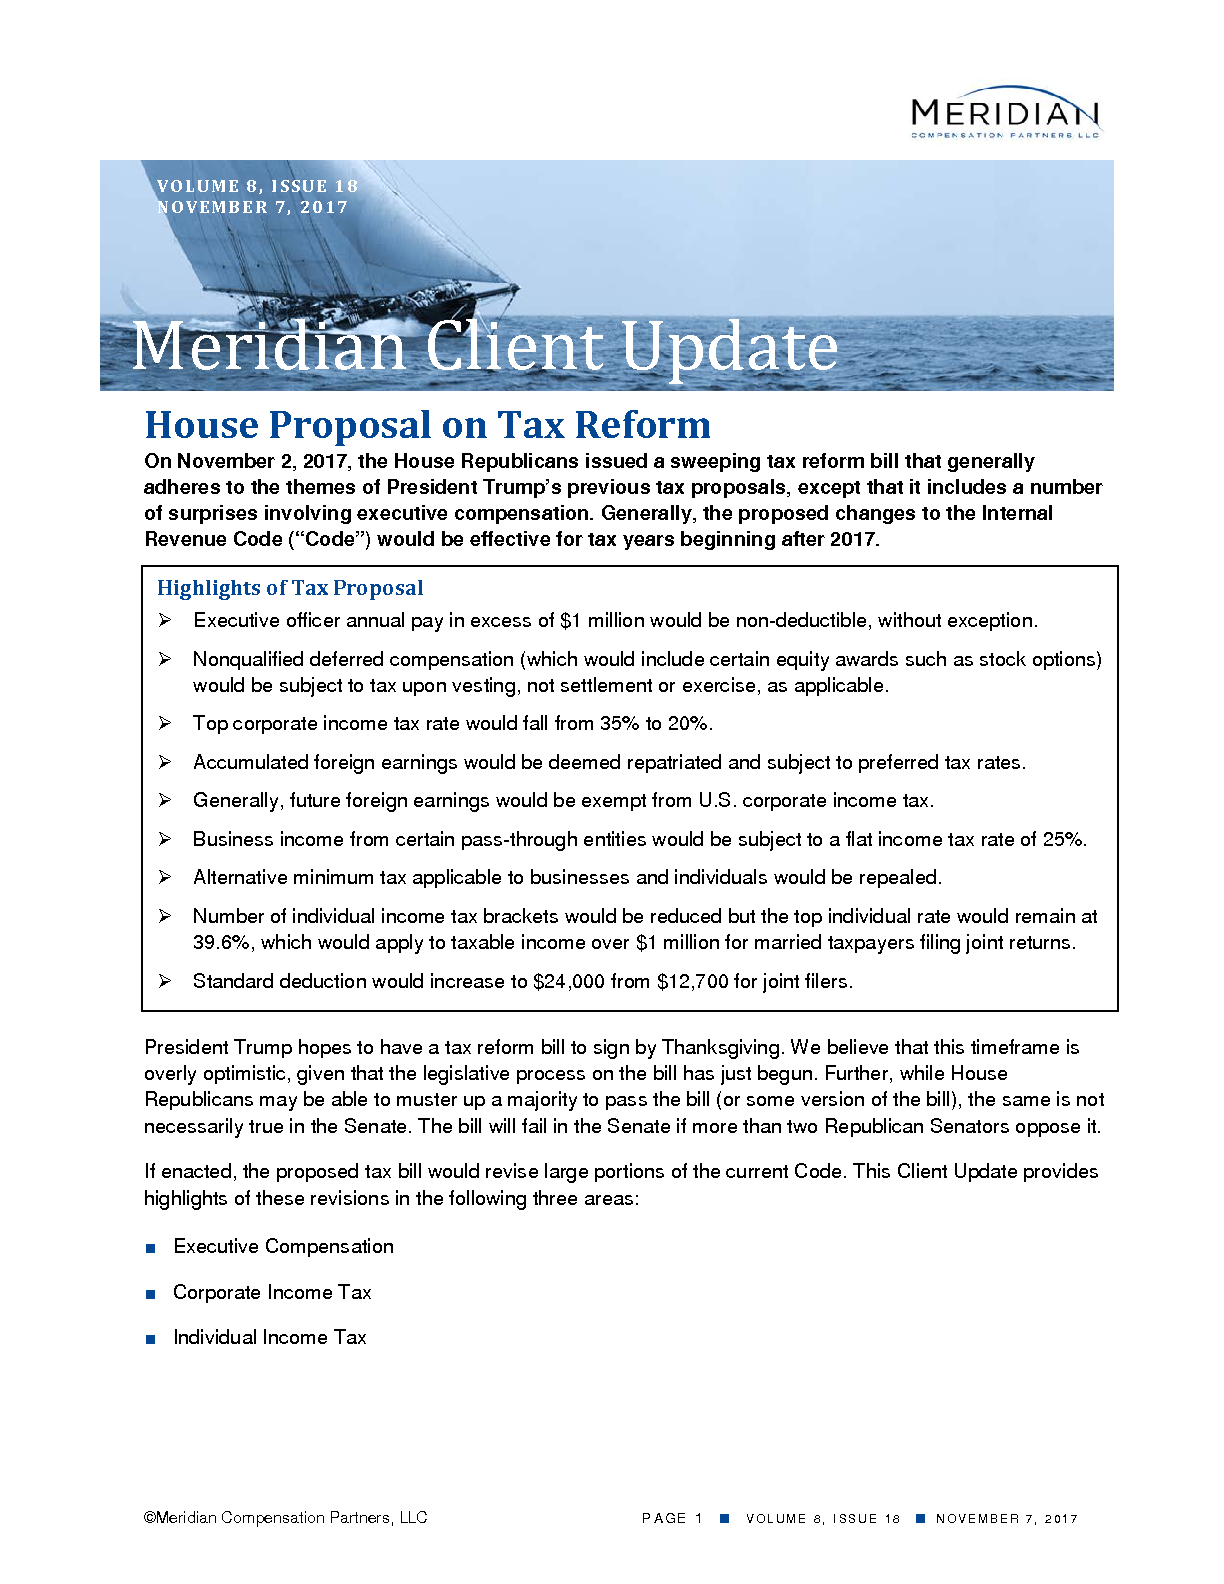 House Proposal on Tax Reform (PDF)